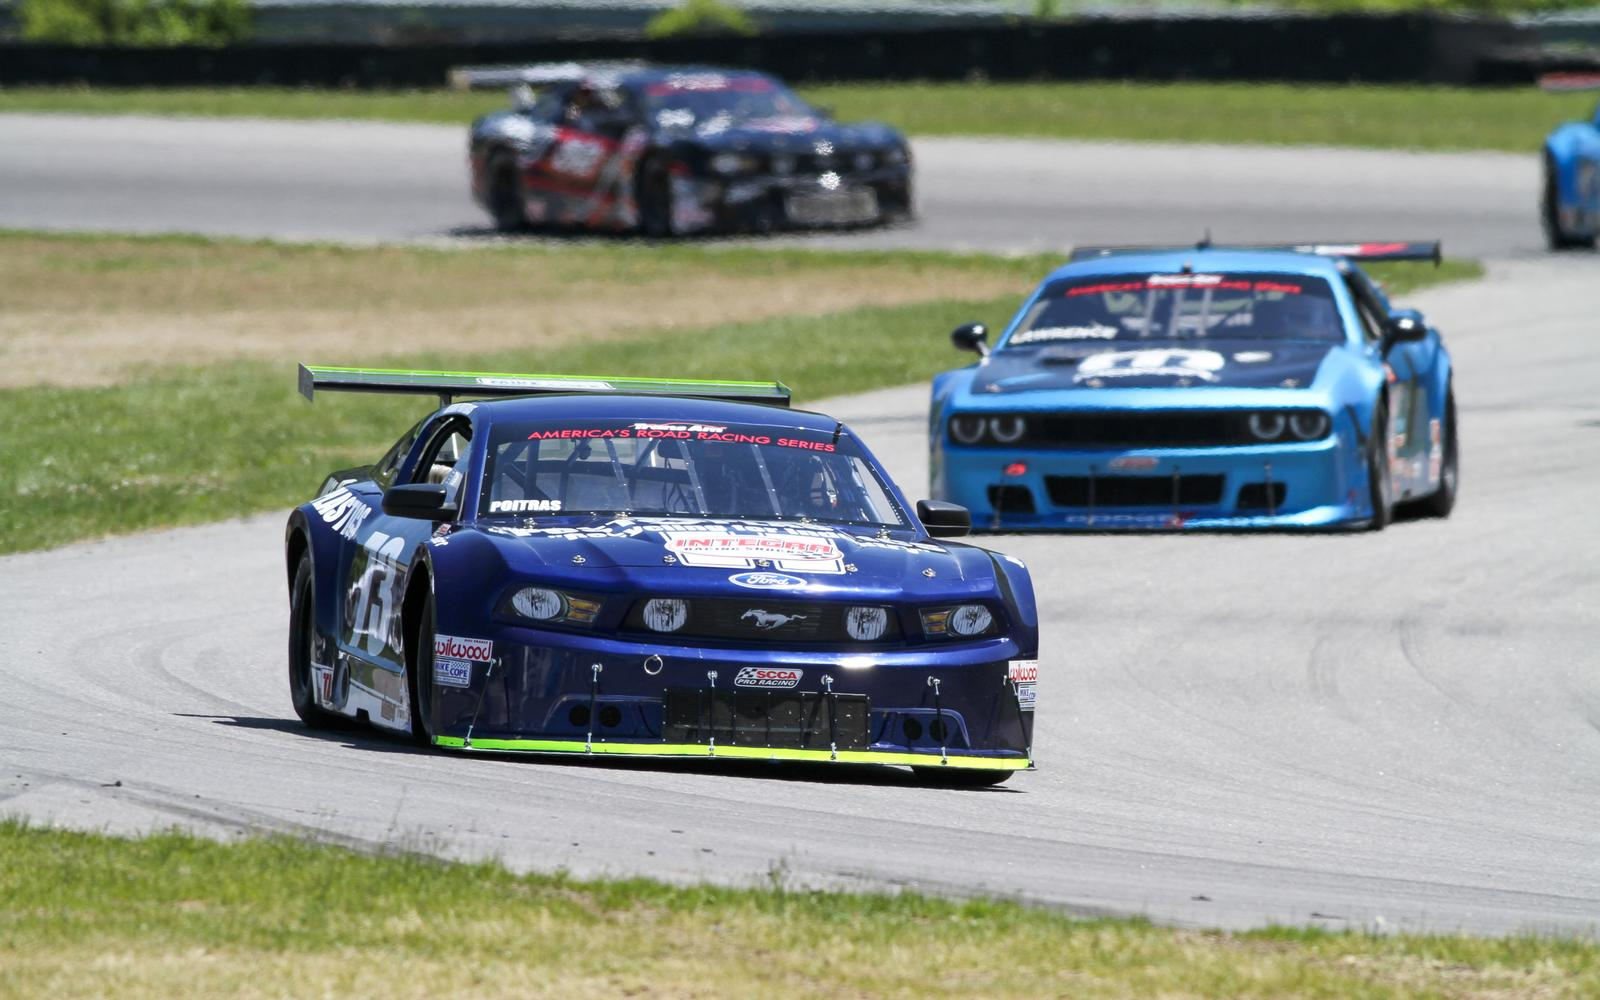 Poitras poised for success at Mid-Ohio